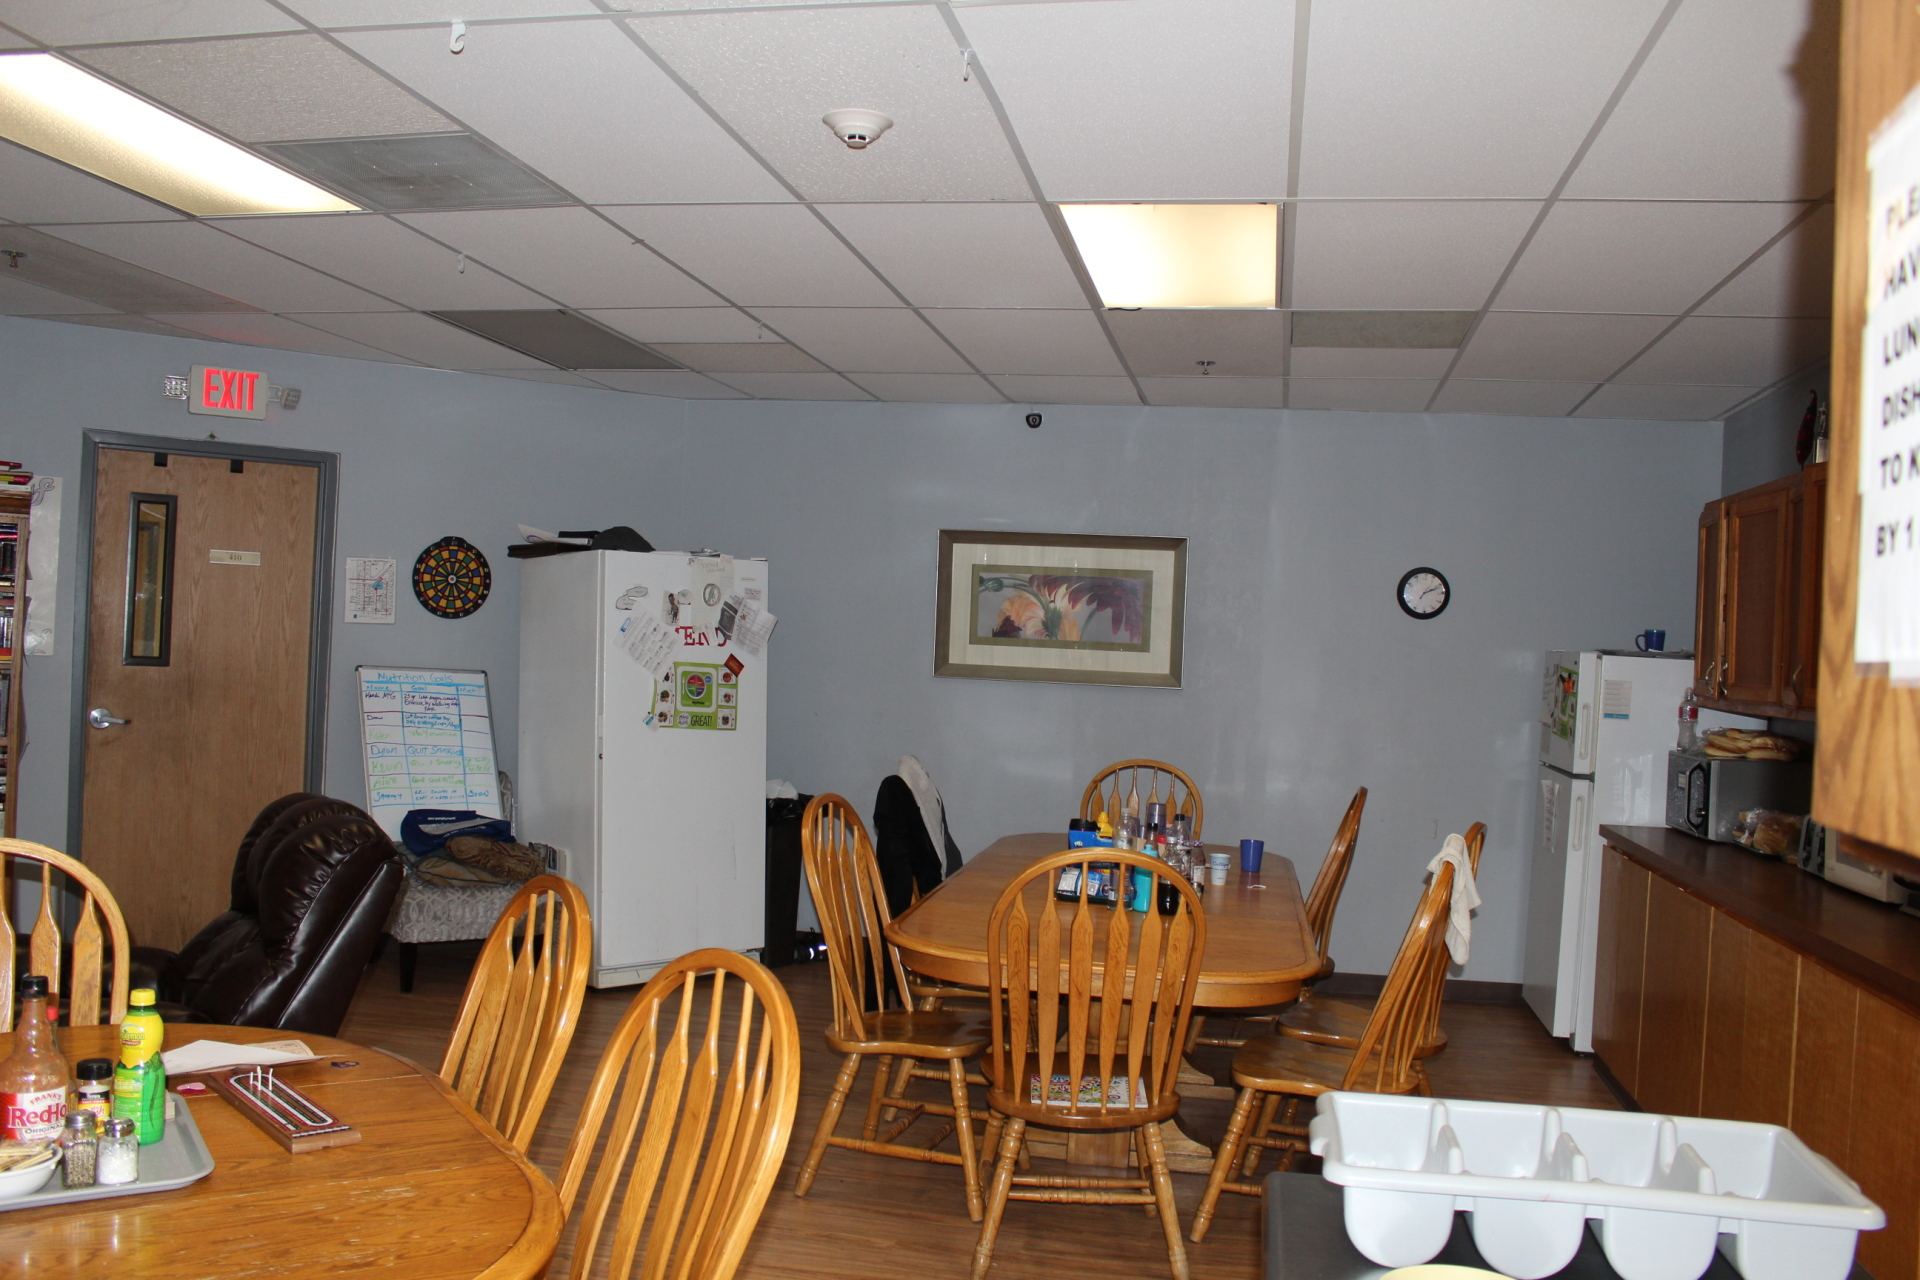 Inpatient Dining Area